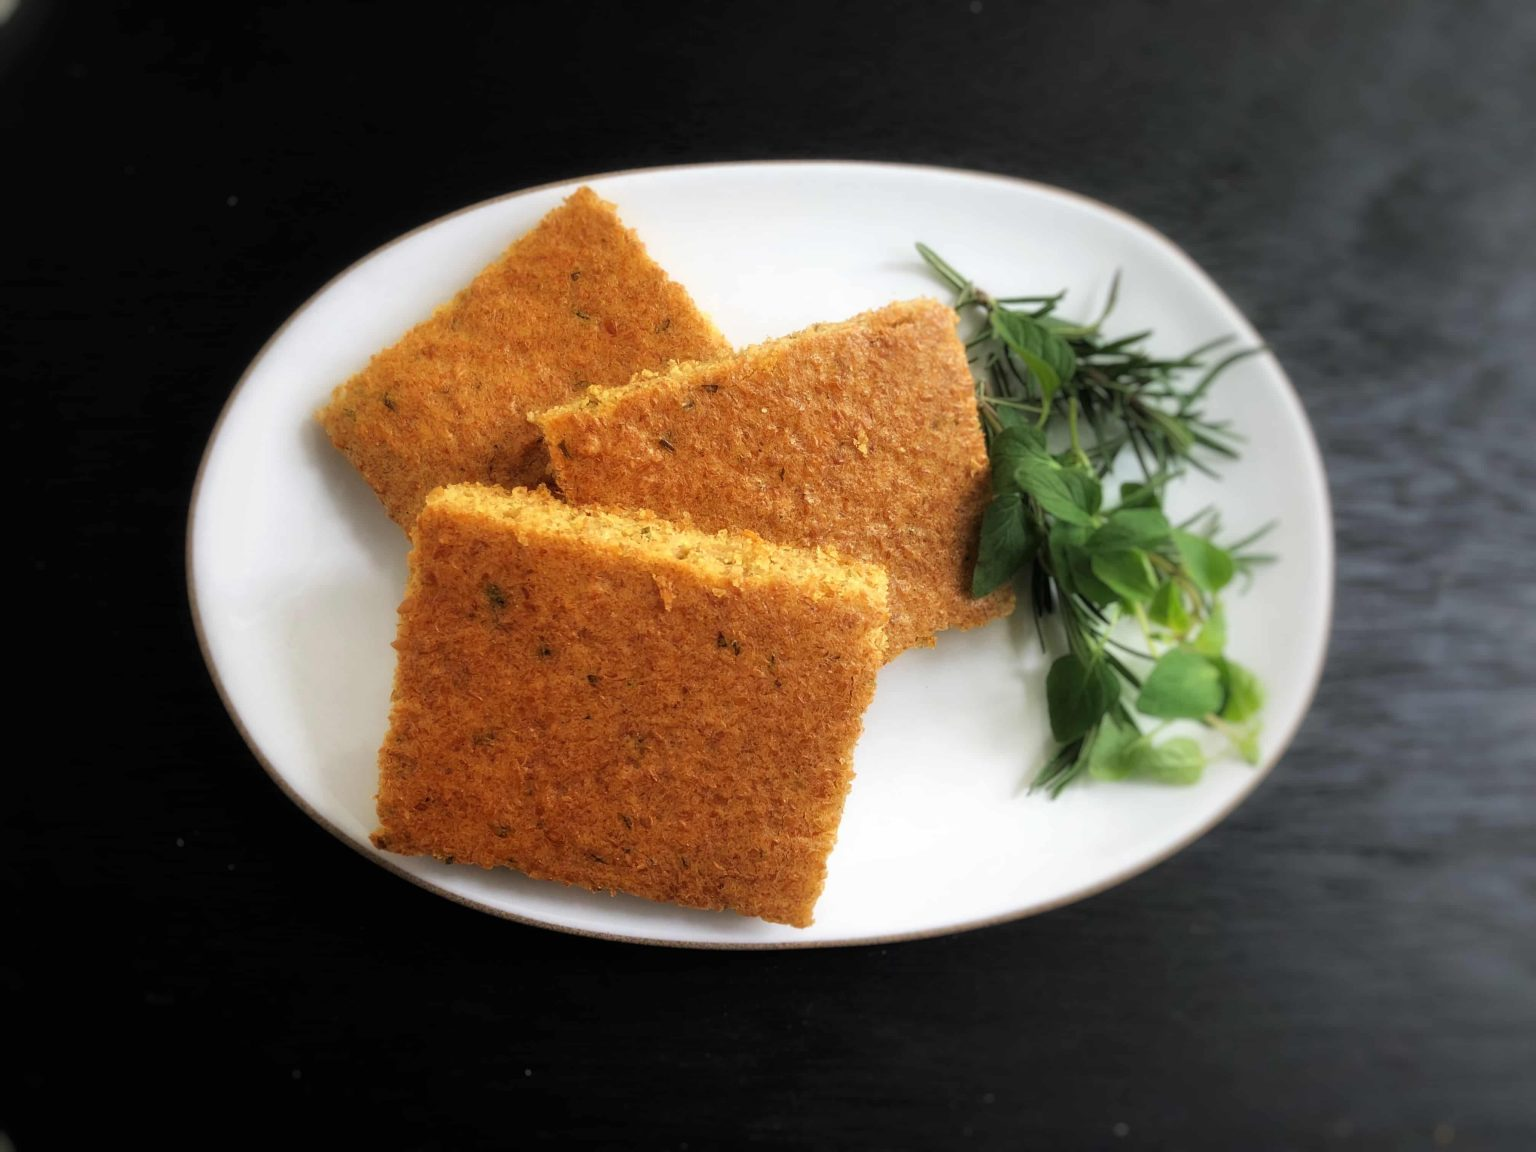 herbed flax focaccia